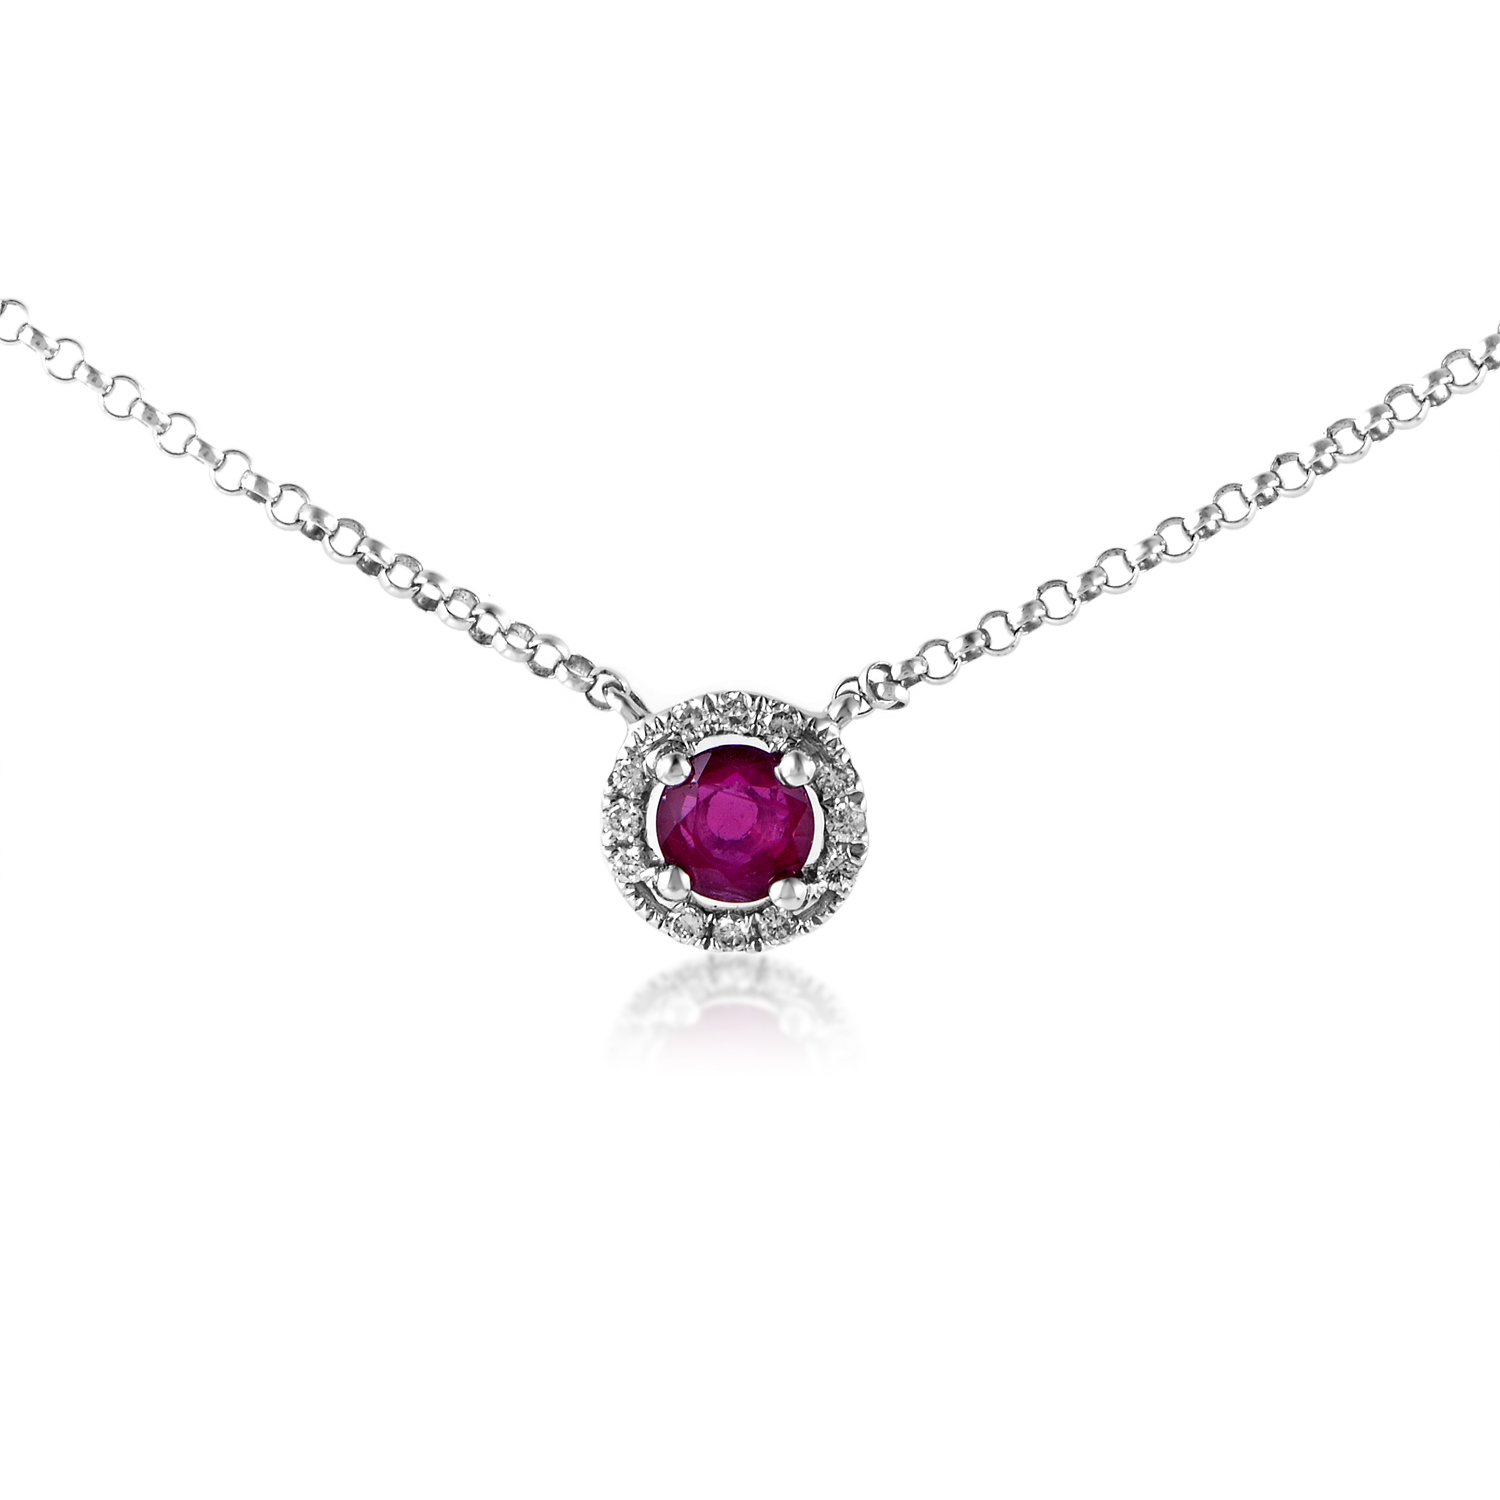 Women's 18K White Gold Diamond & Ruby Solitaire Pendant Necklace